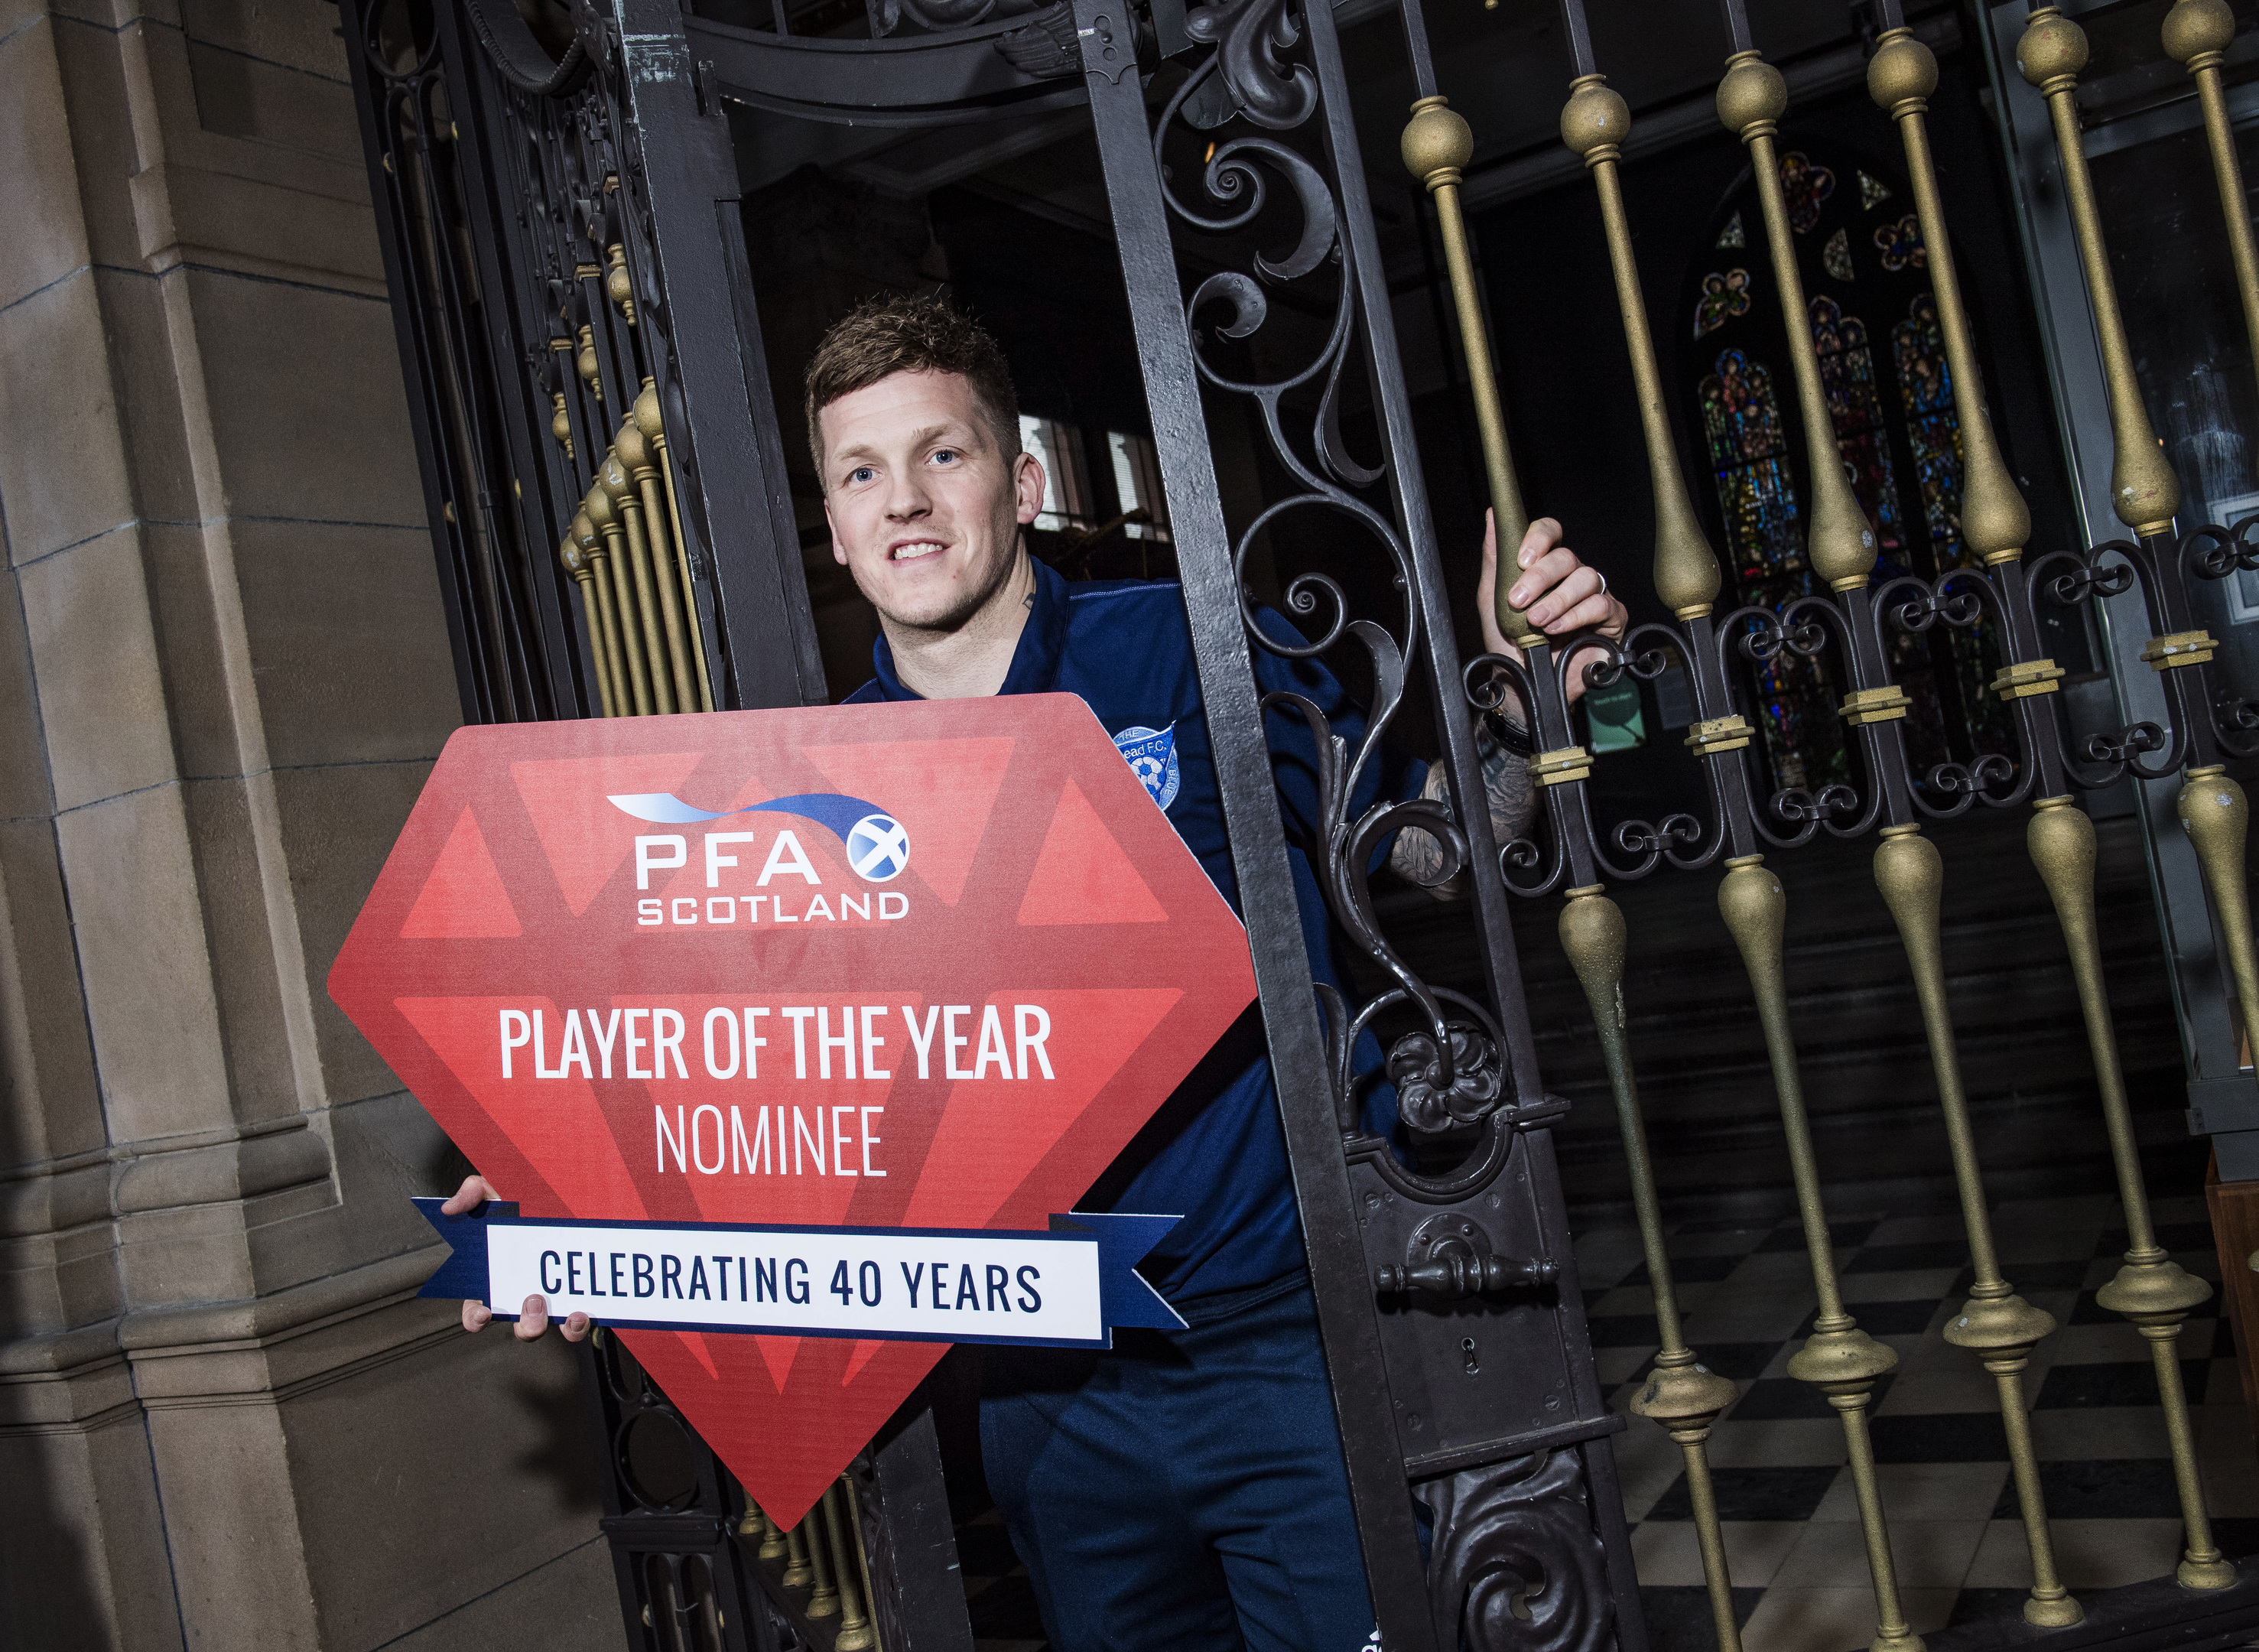 Willie Gibson is nominated for the League 2 player of the year award.